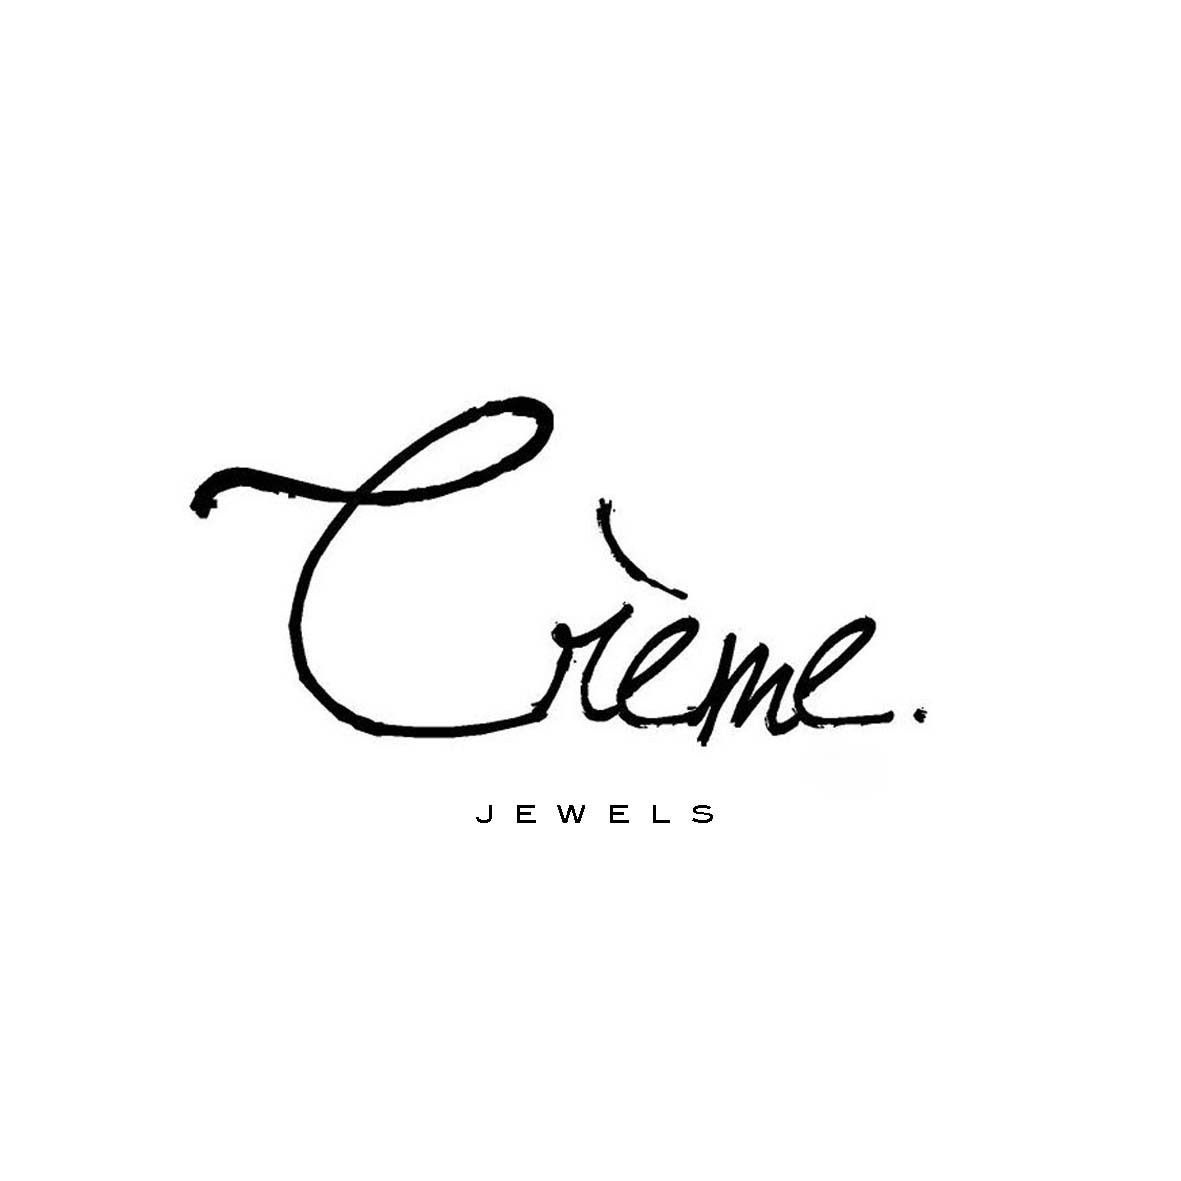 @cremejewels Cover Image